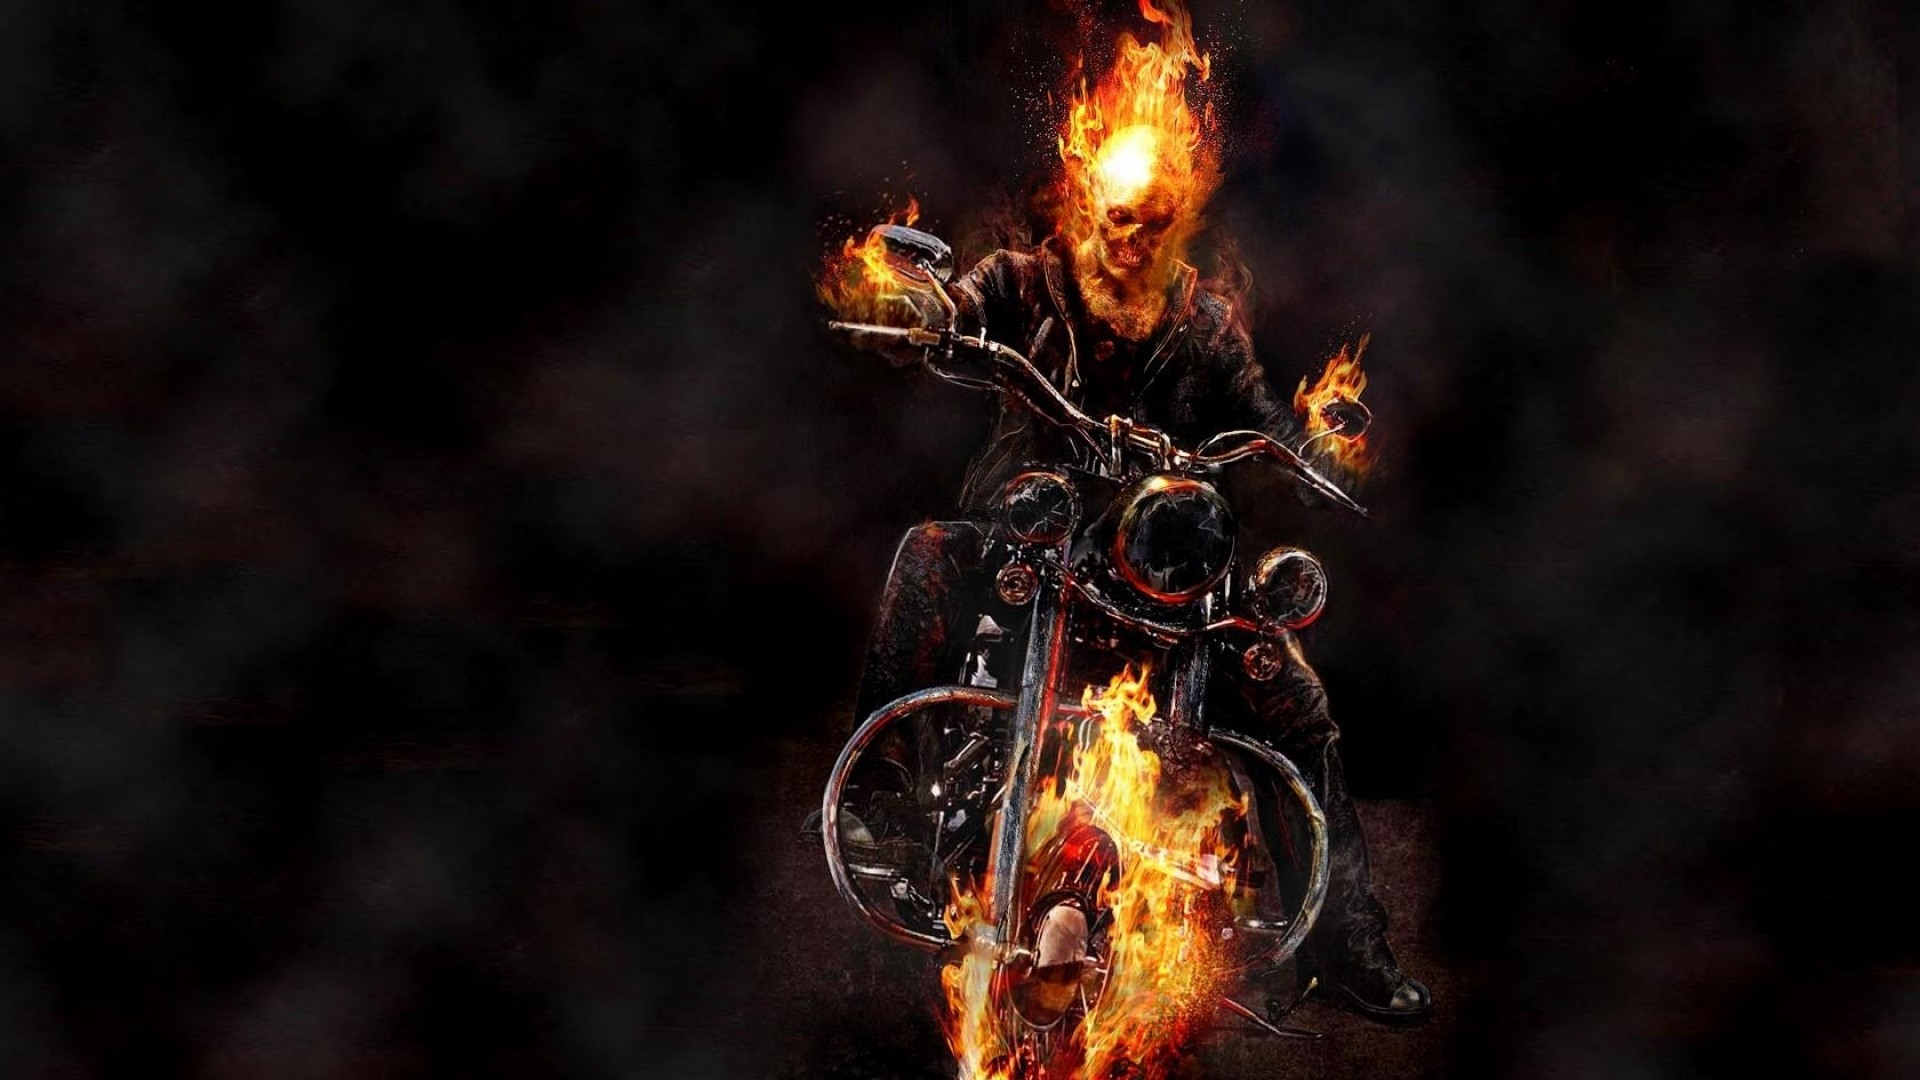 Full HD 1080p Ghost rider Wallpapers HD, Desktop Backgrounds